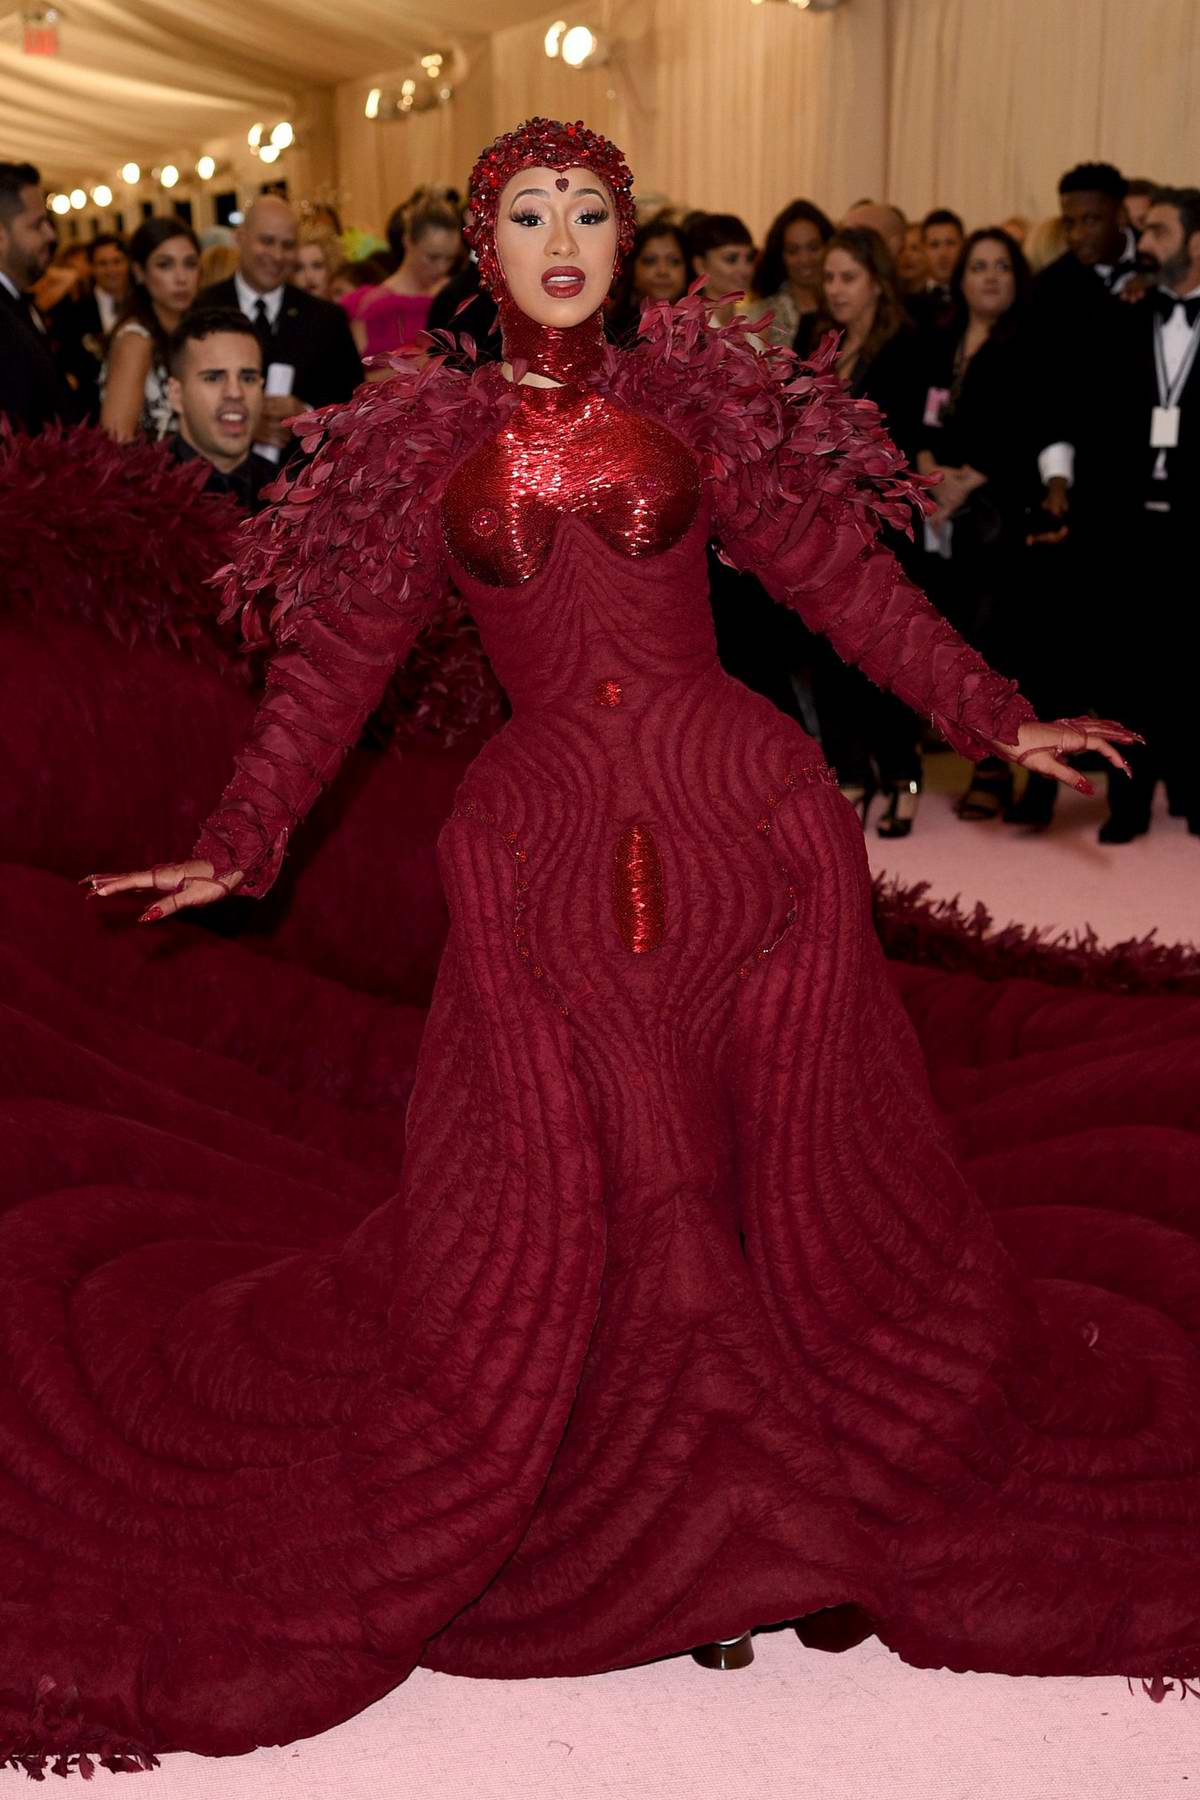 Cardi B attends The 2019 Met Gala Celebrating Camp: Notes on Fashion in New York City